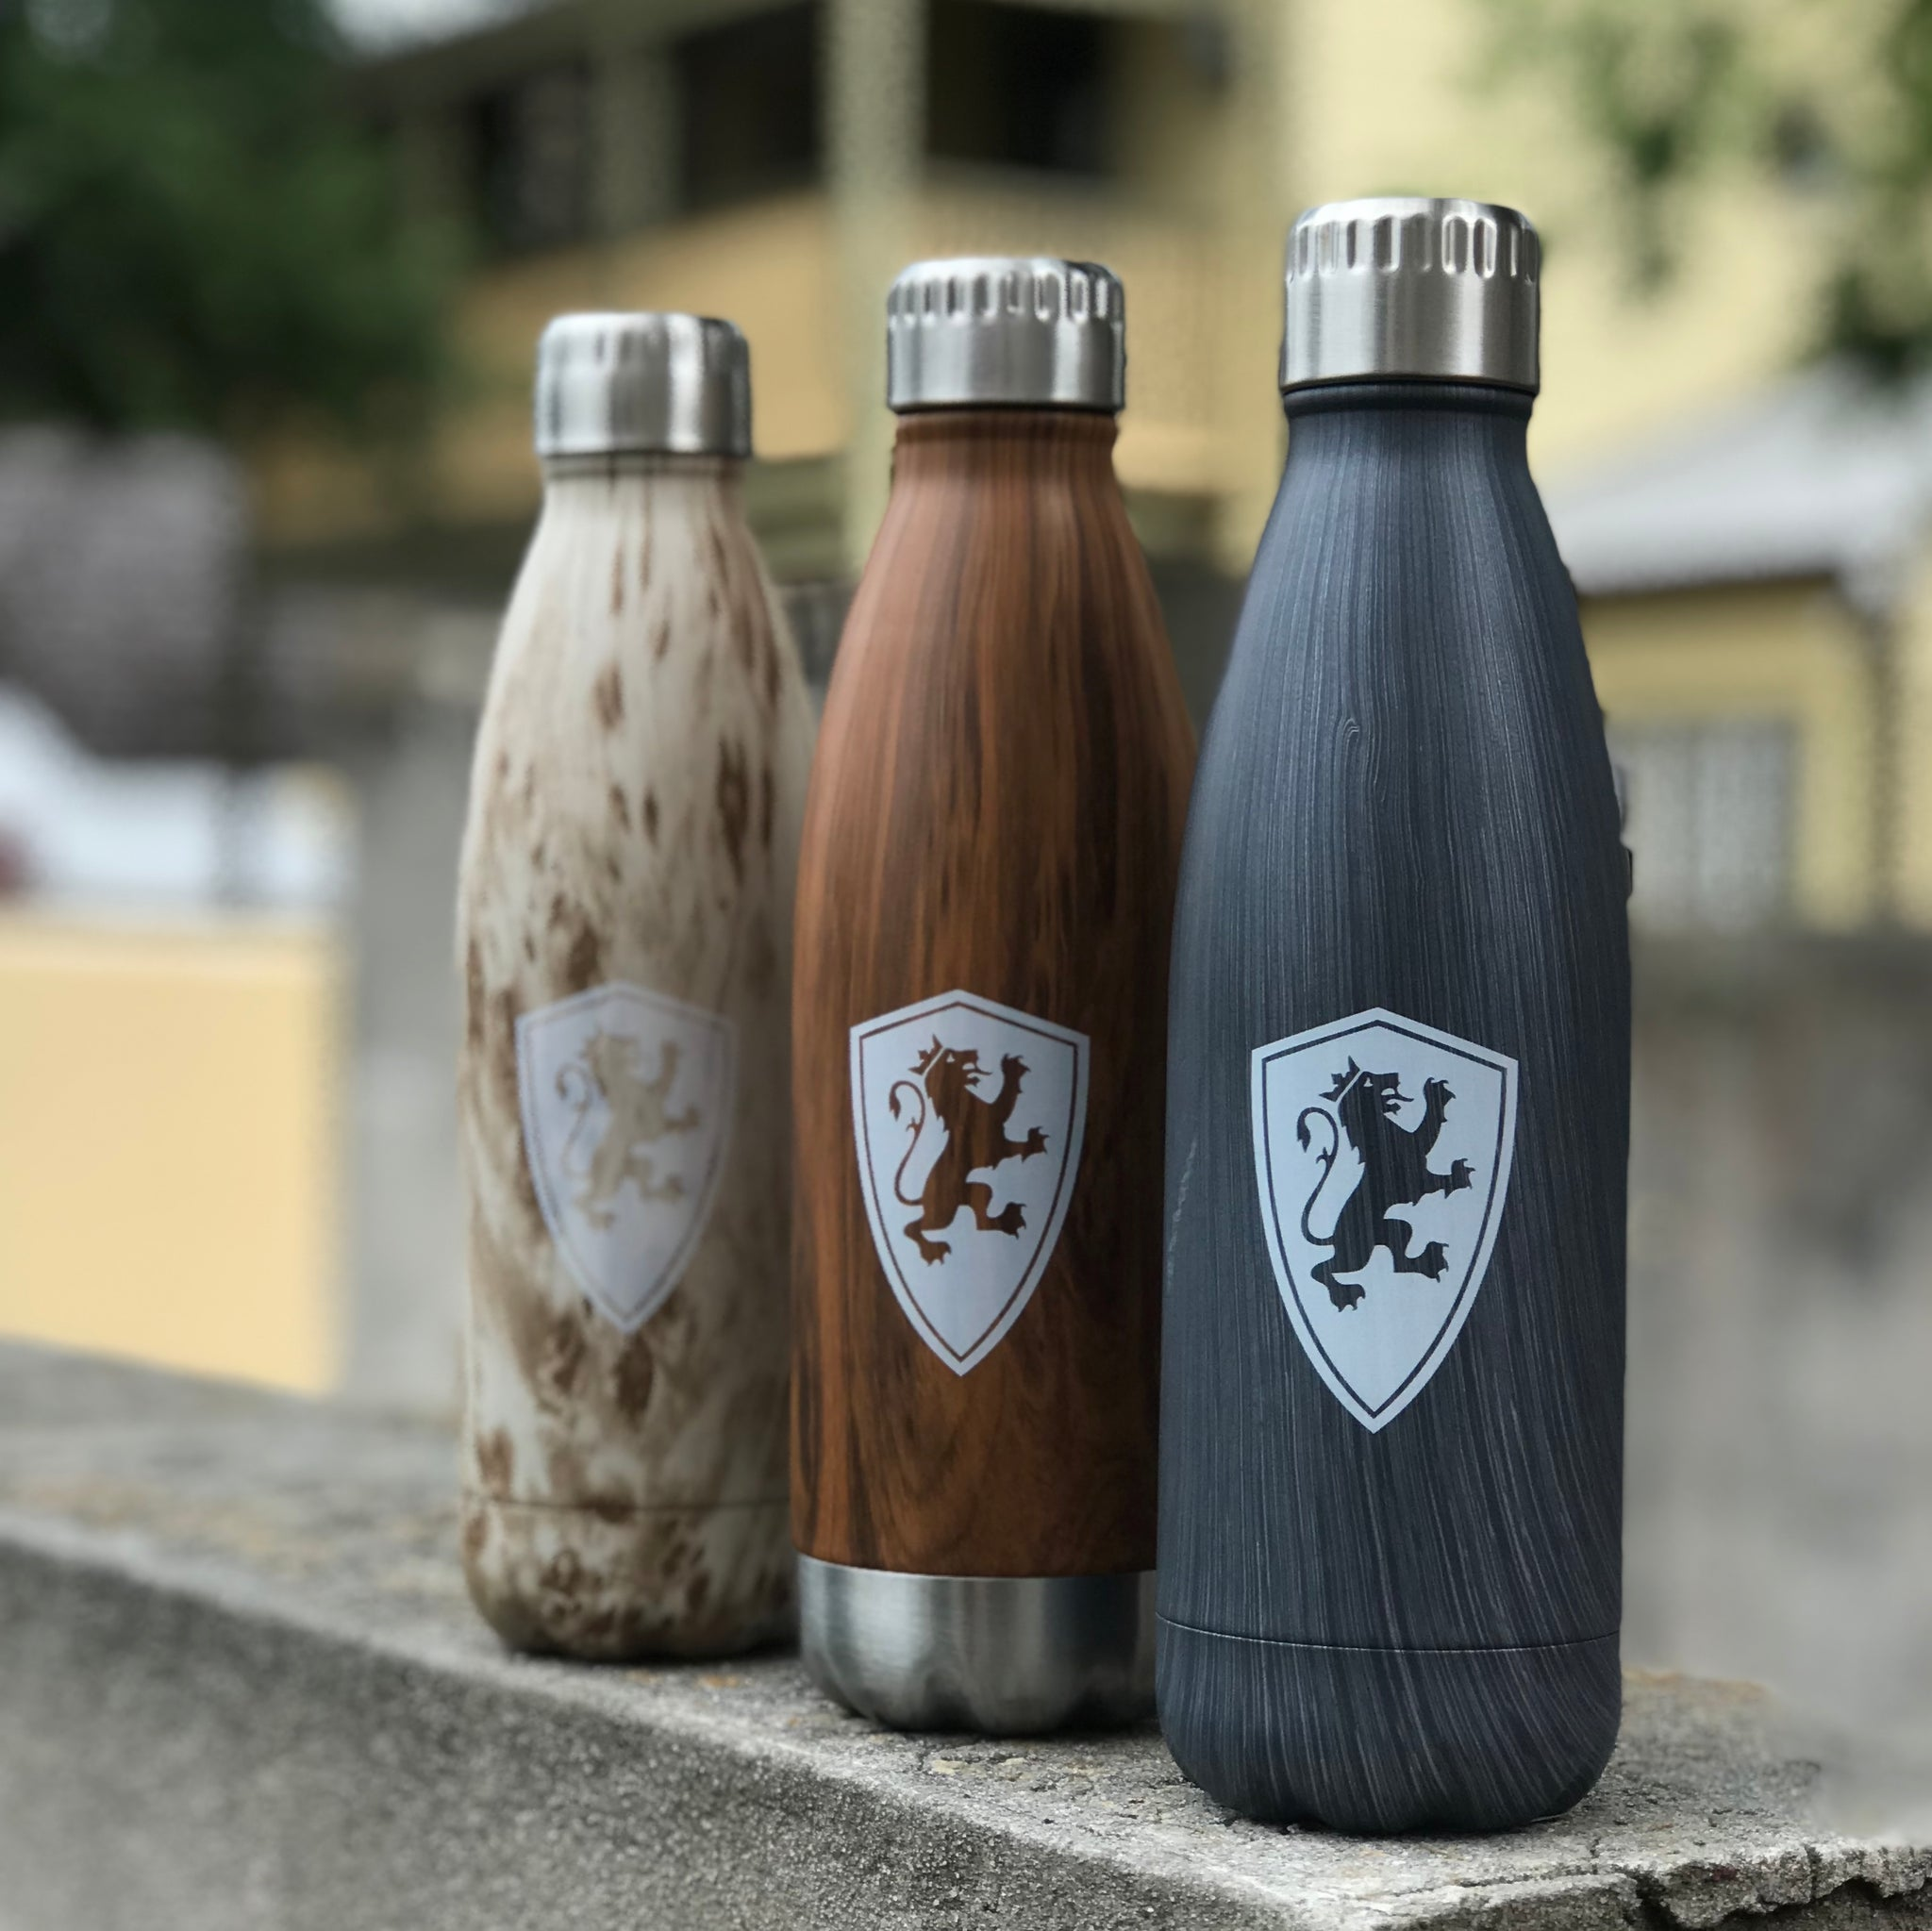 three Woodtone Flagler water bottle, one is light wood, second is dark wood, and last is grey. All have white lion shield printed on it and they all have a silver lid